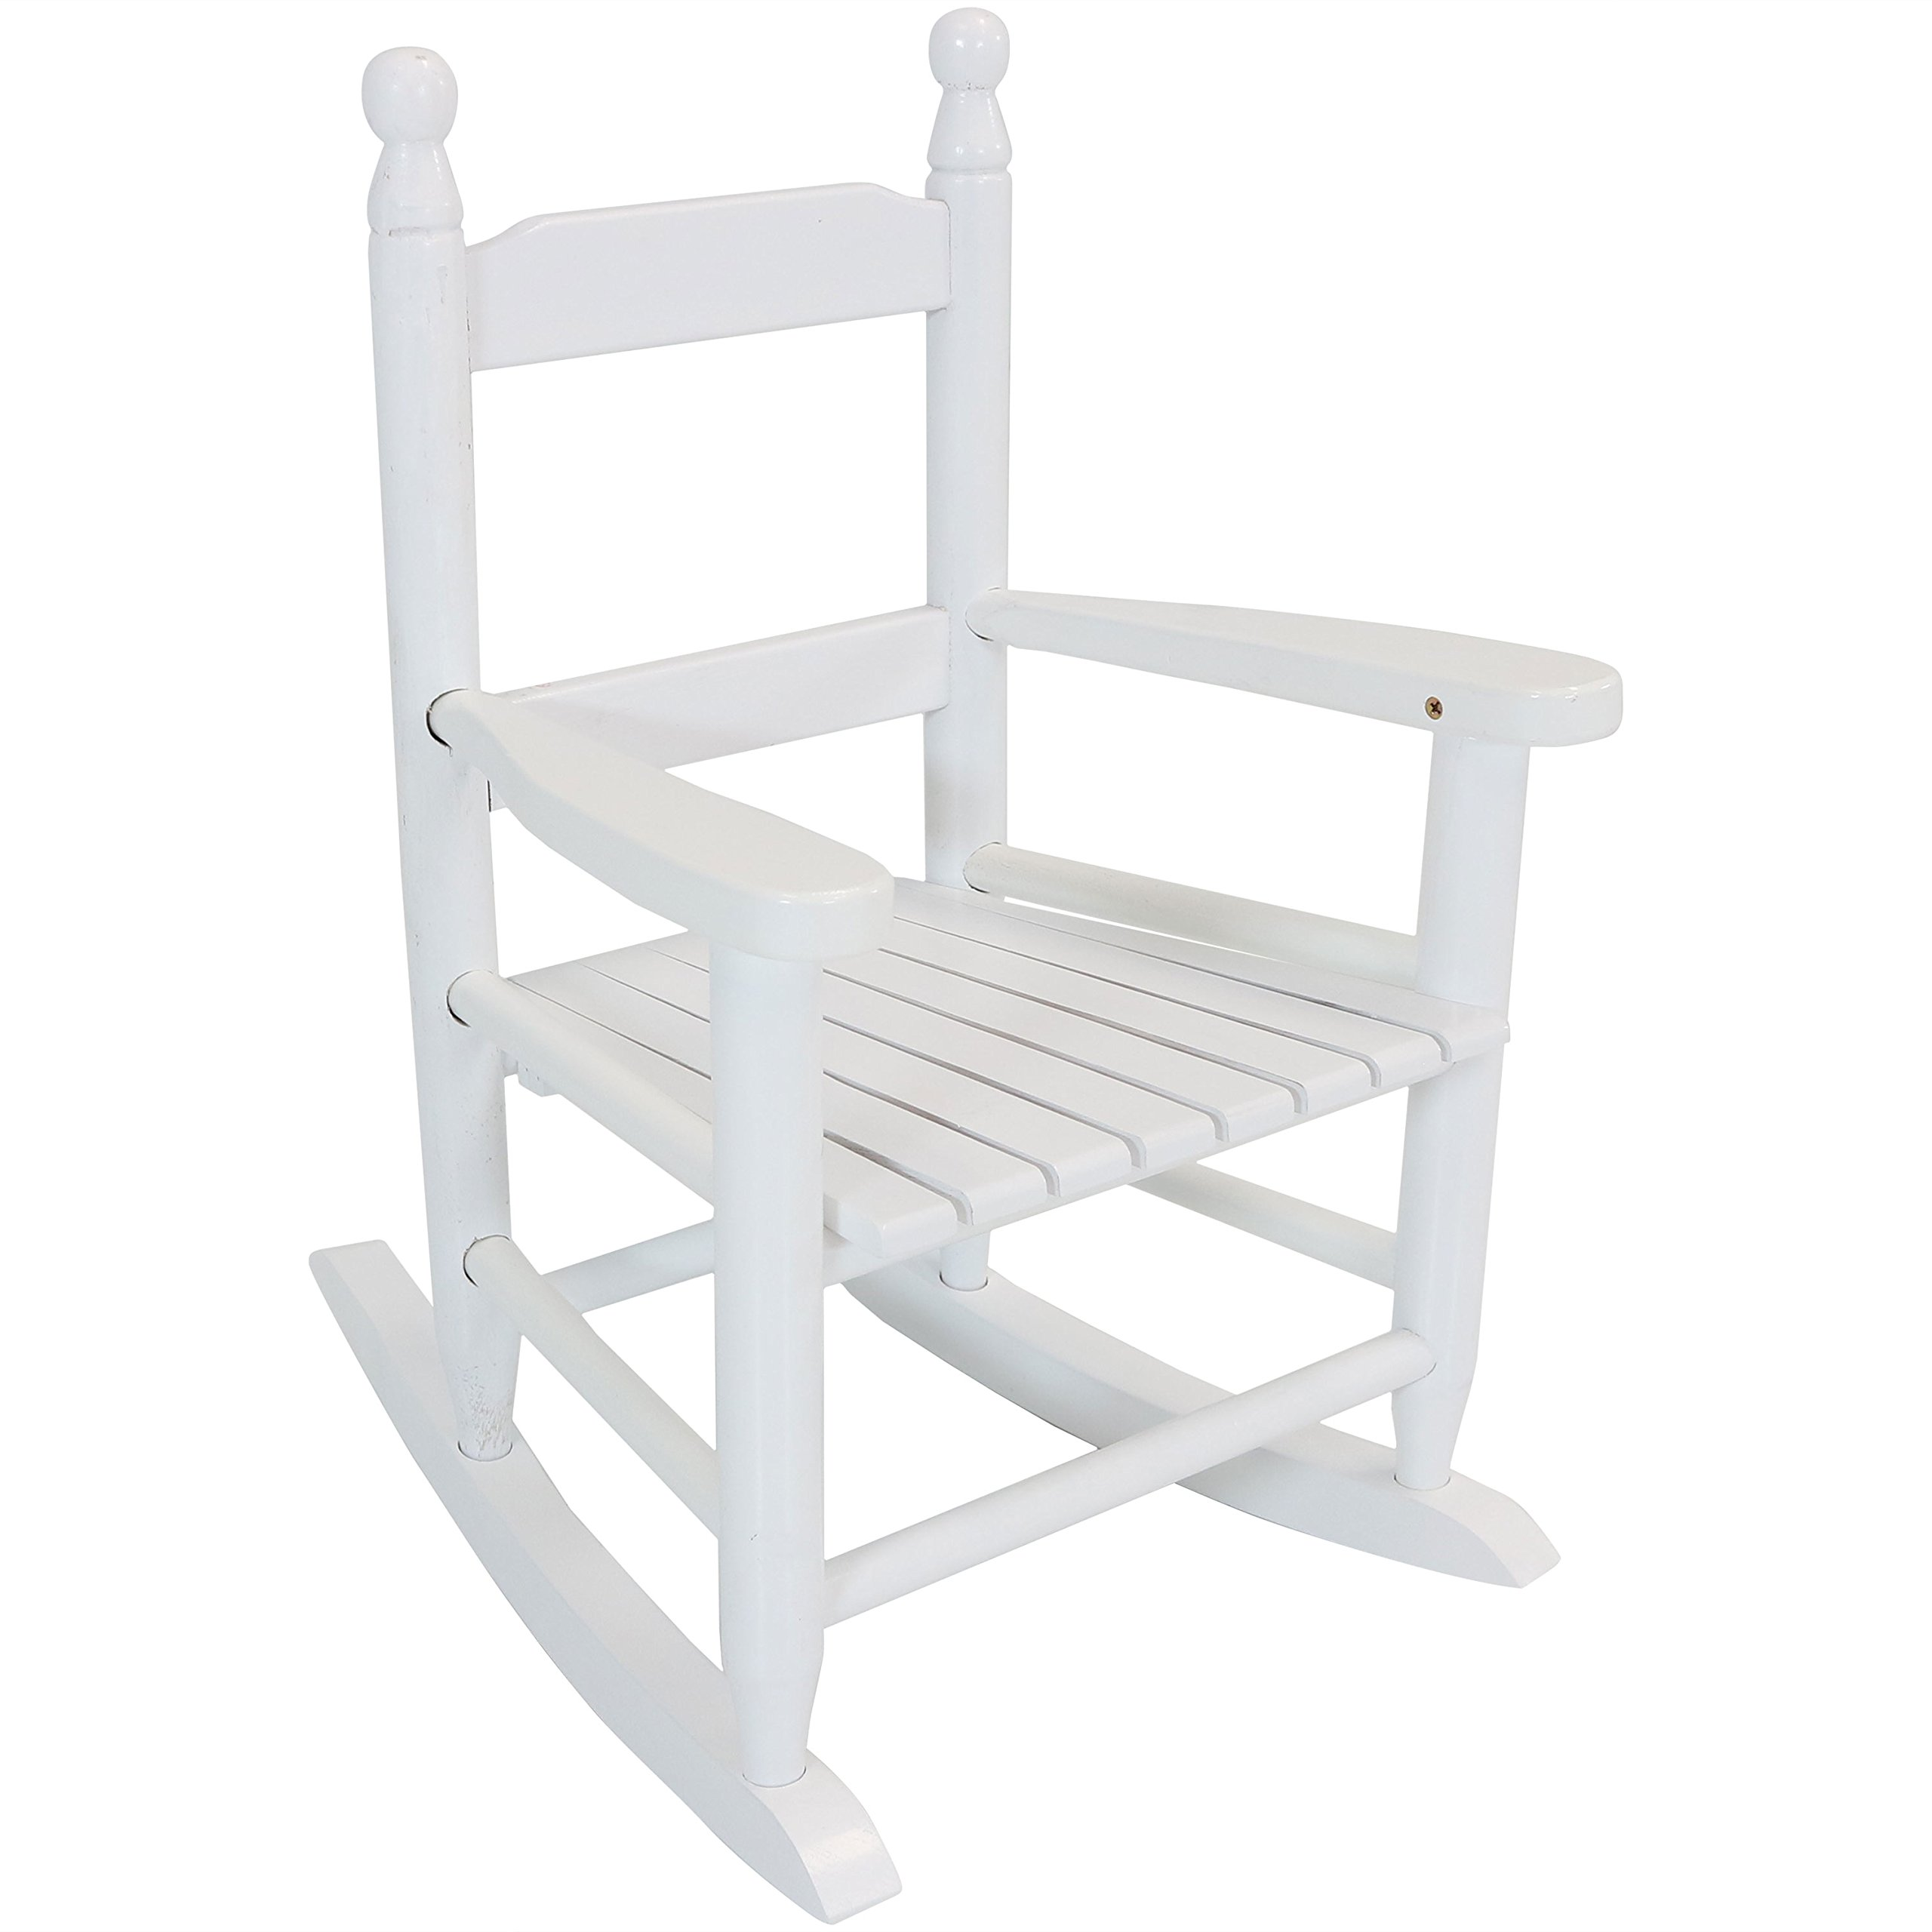 Sunnydaze Toddler Modern Wooden Rocking Chair with Non-Toxic Paint Finish, Fits Most Children Under 3 Feet Tall, White